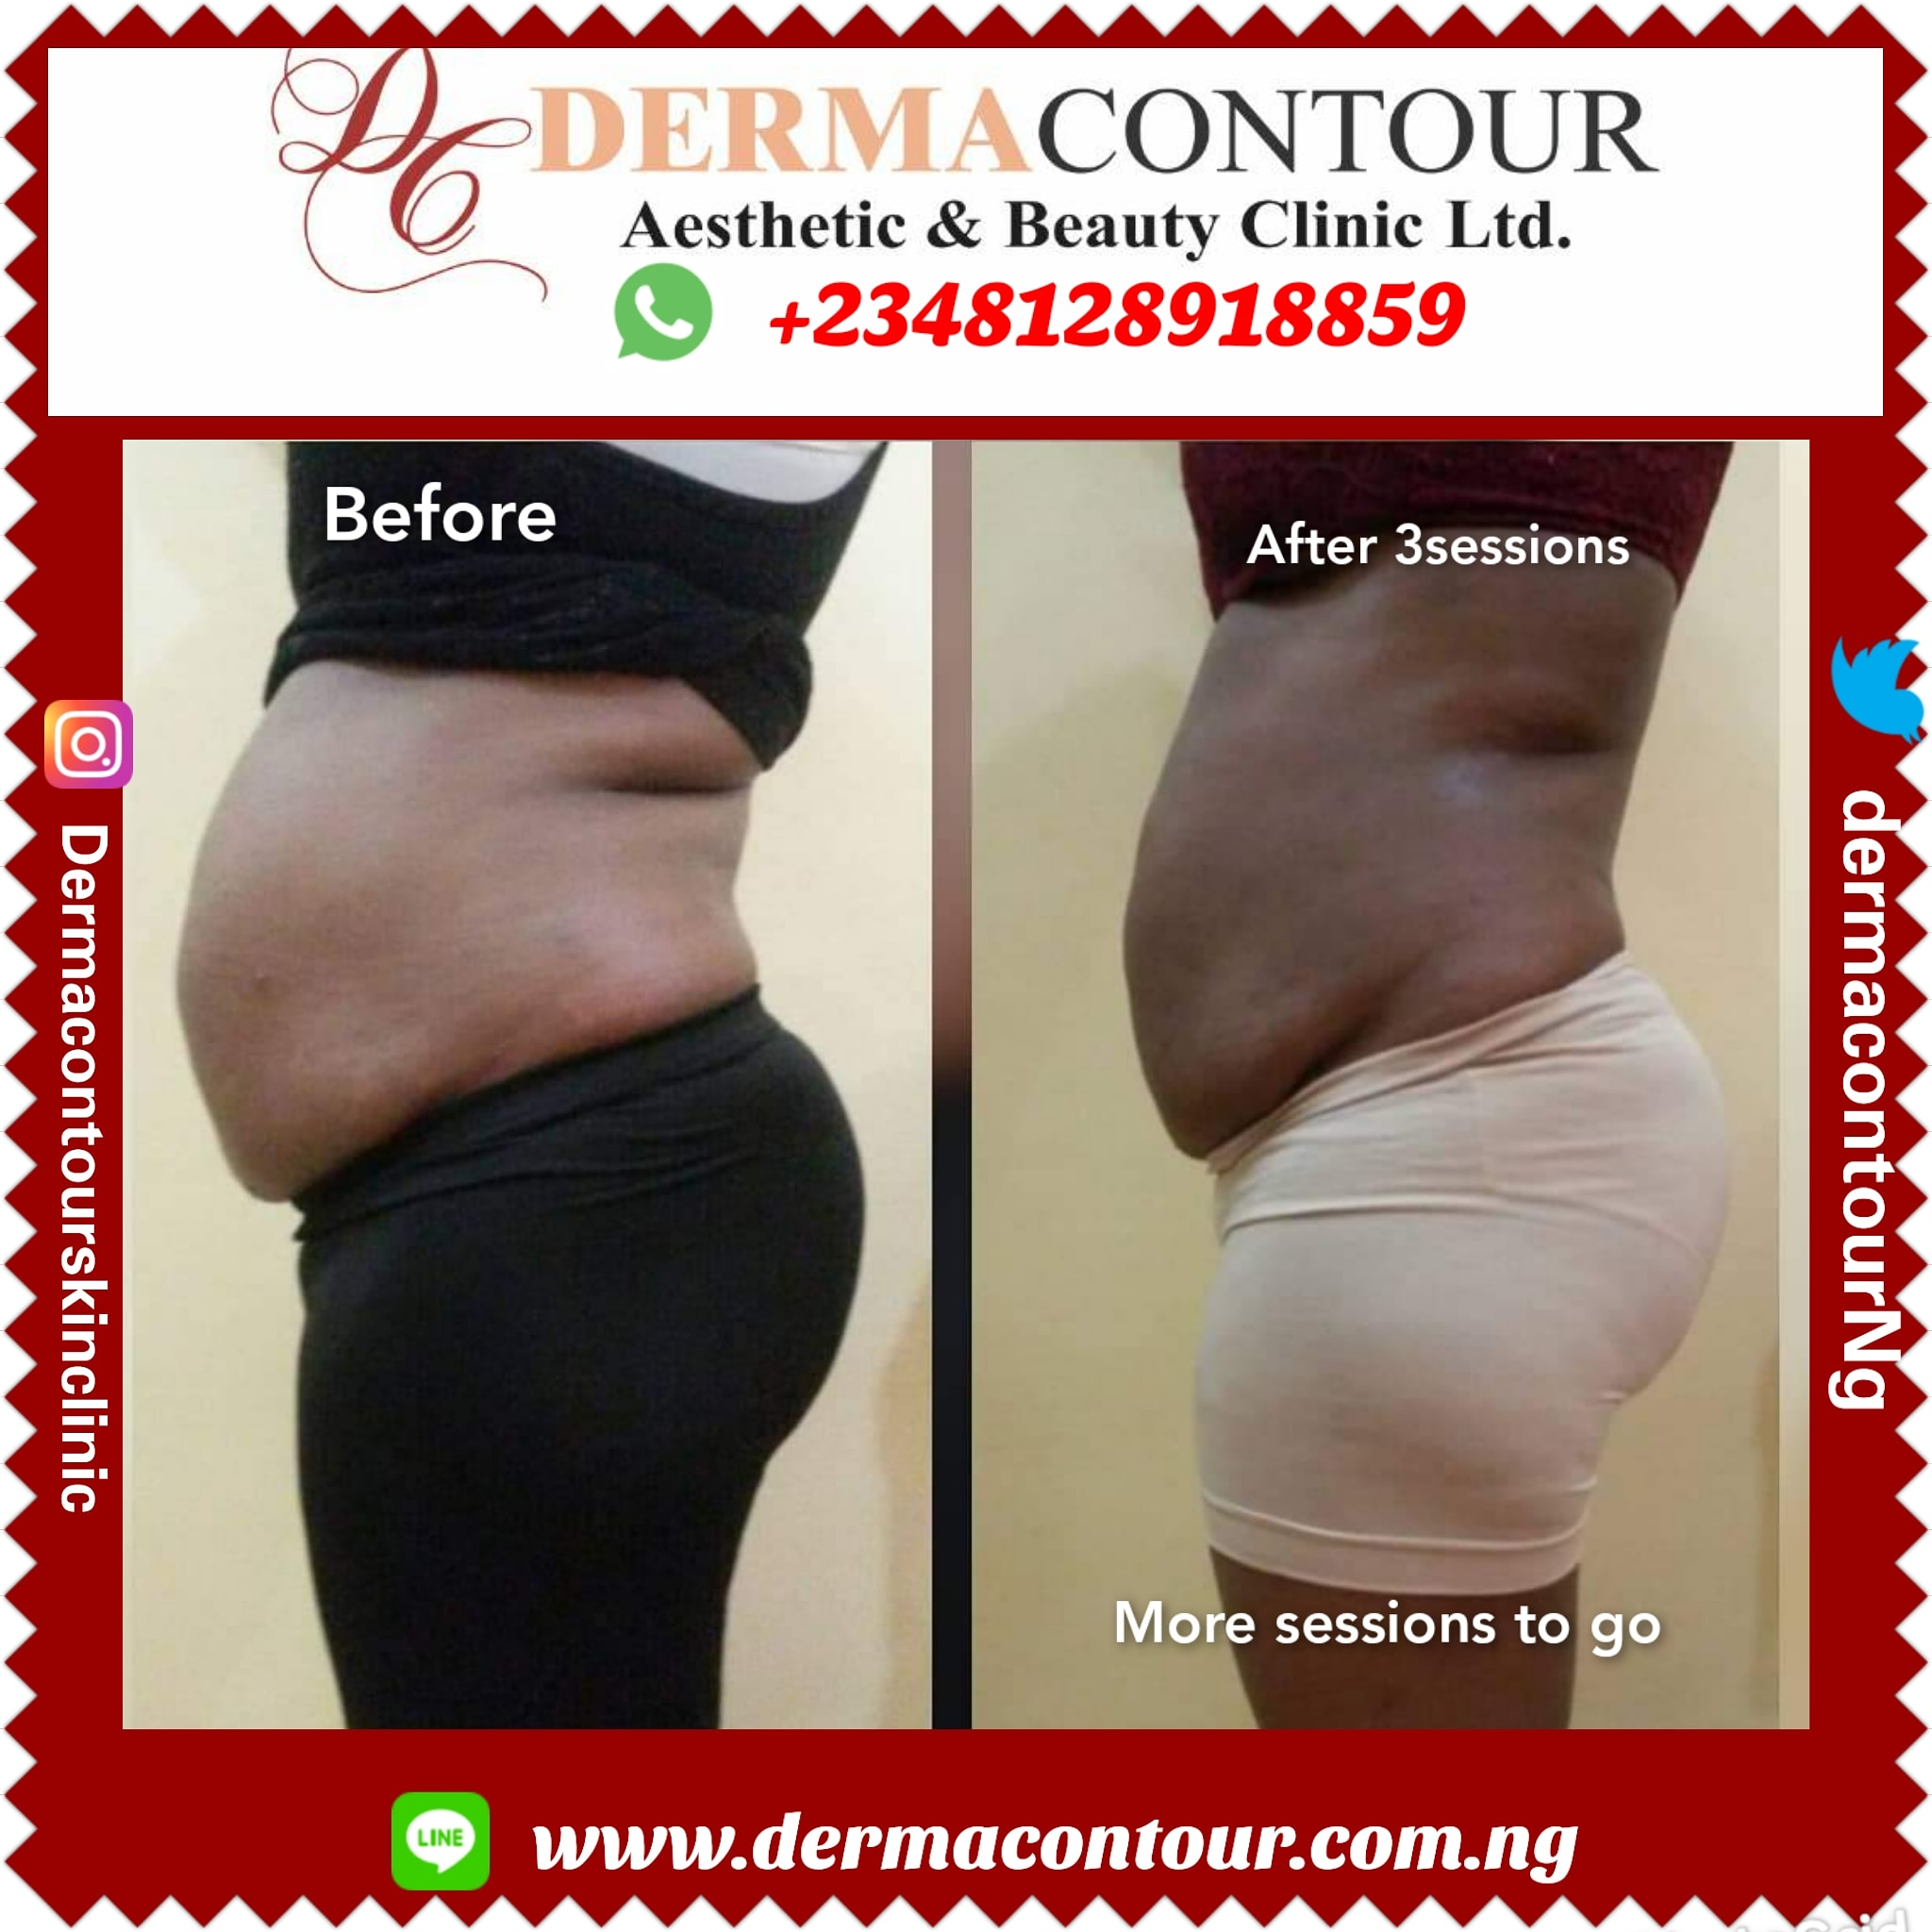 Slimming therapy,Stretch mark removal, fatremoval, bodysculpting, fatreduction,